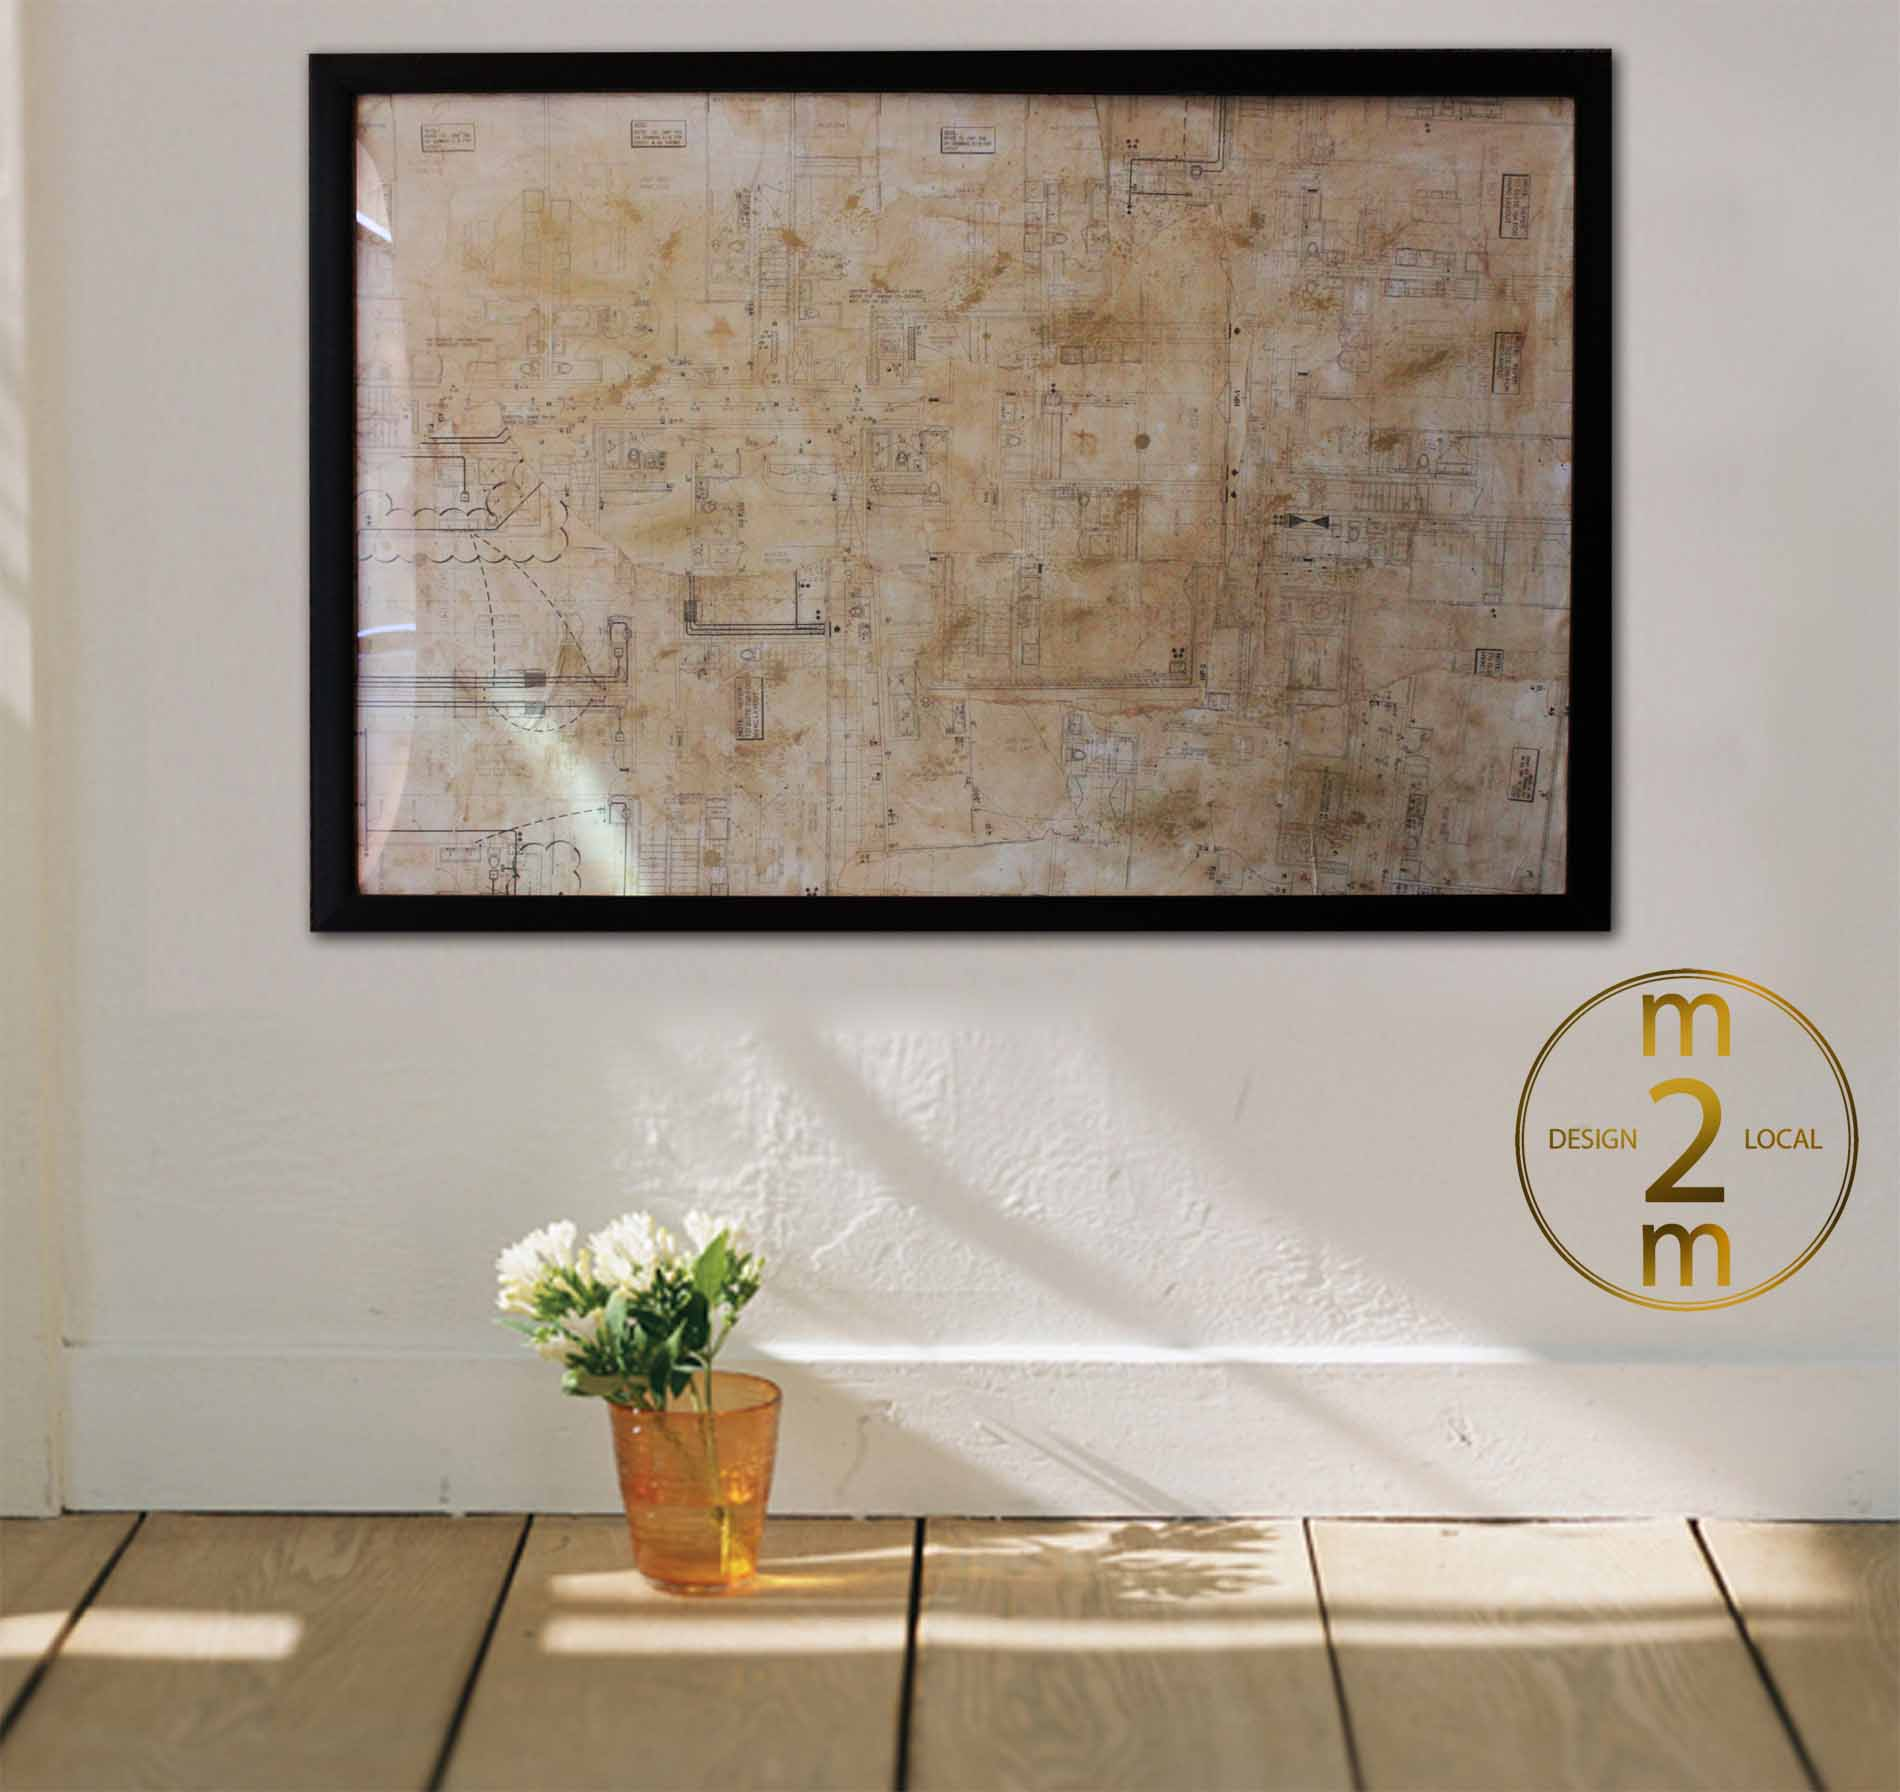 Architectural Wall Art architectural floor plan wall artm2m – m2m design local